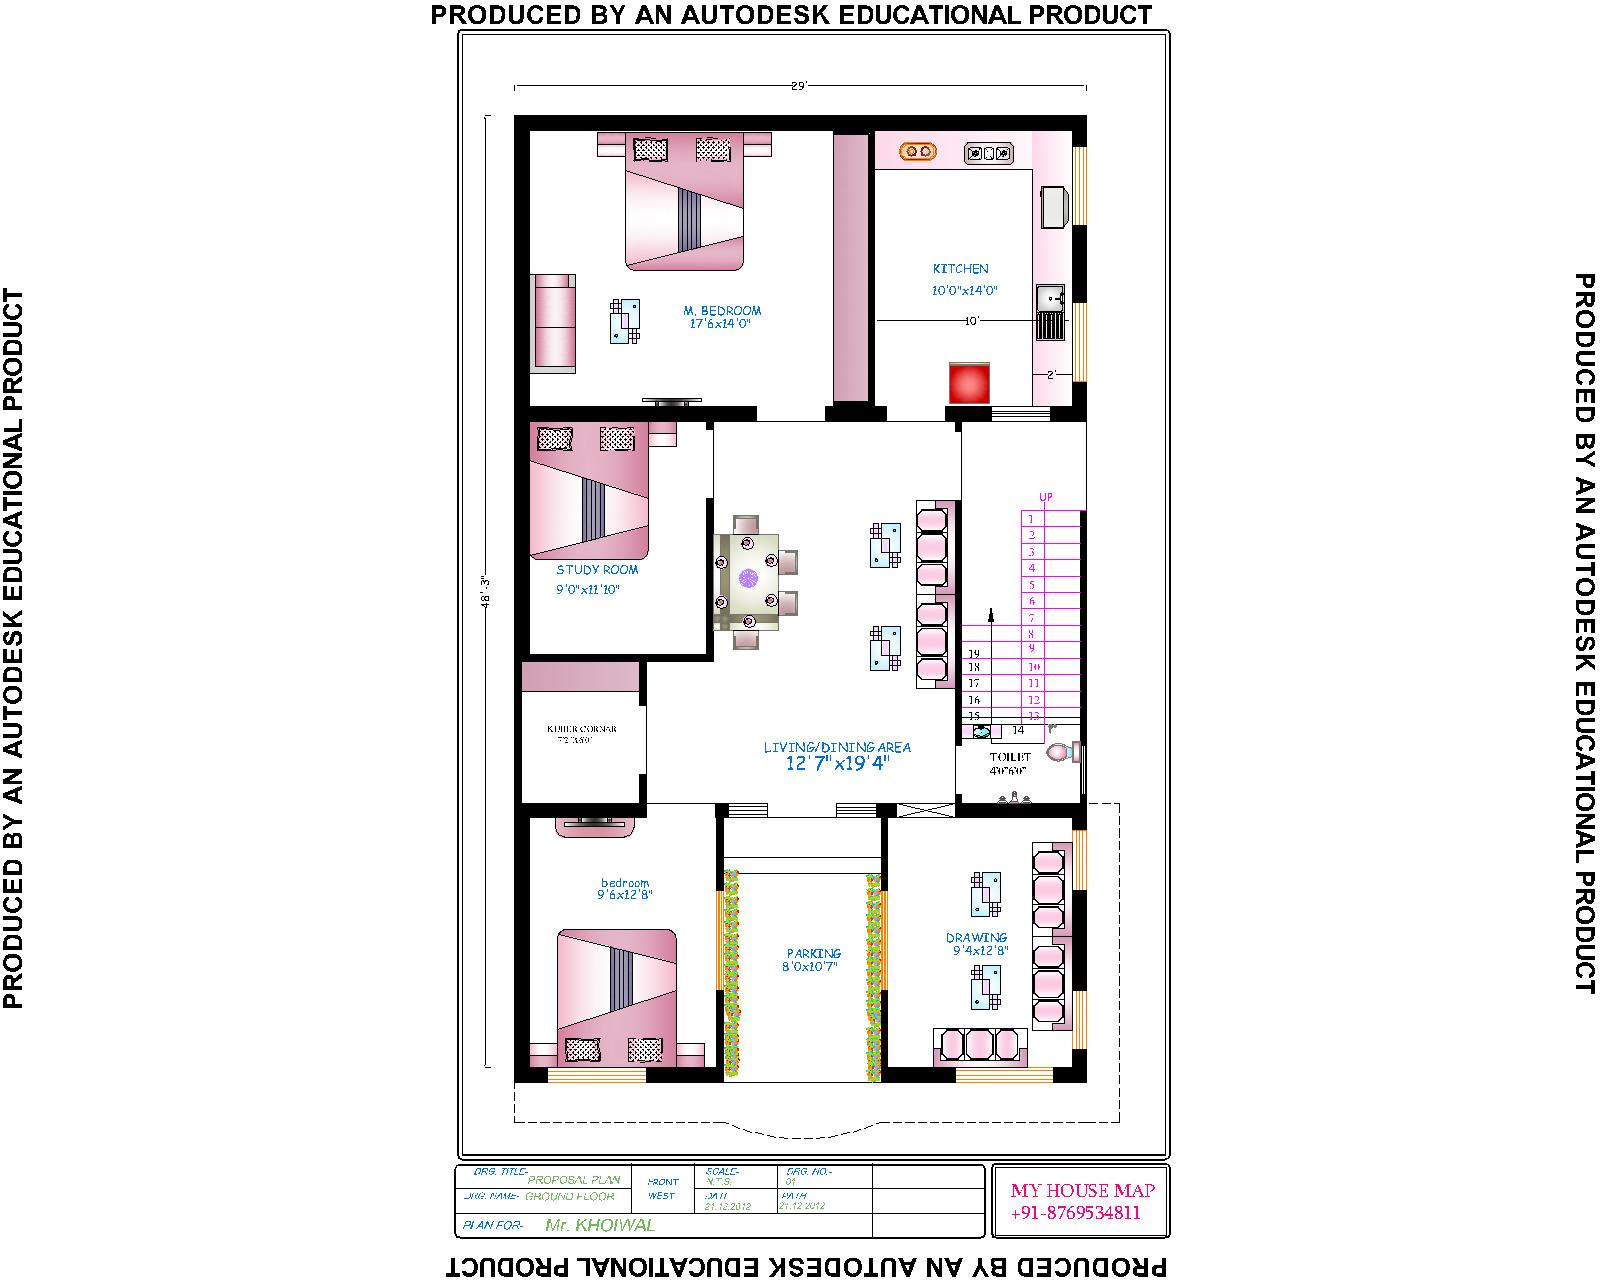 My house map house design india for Home designs map